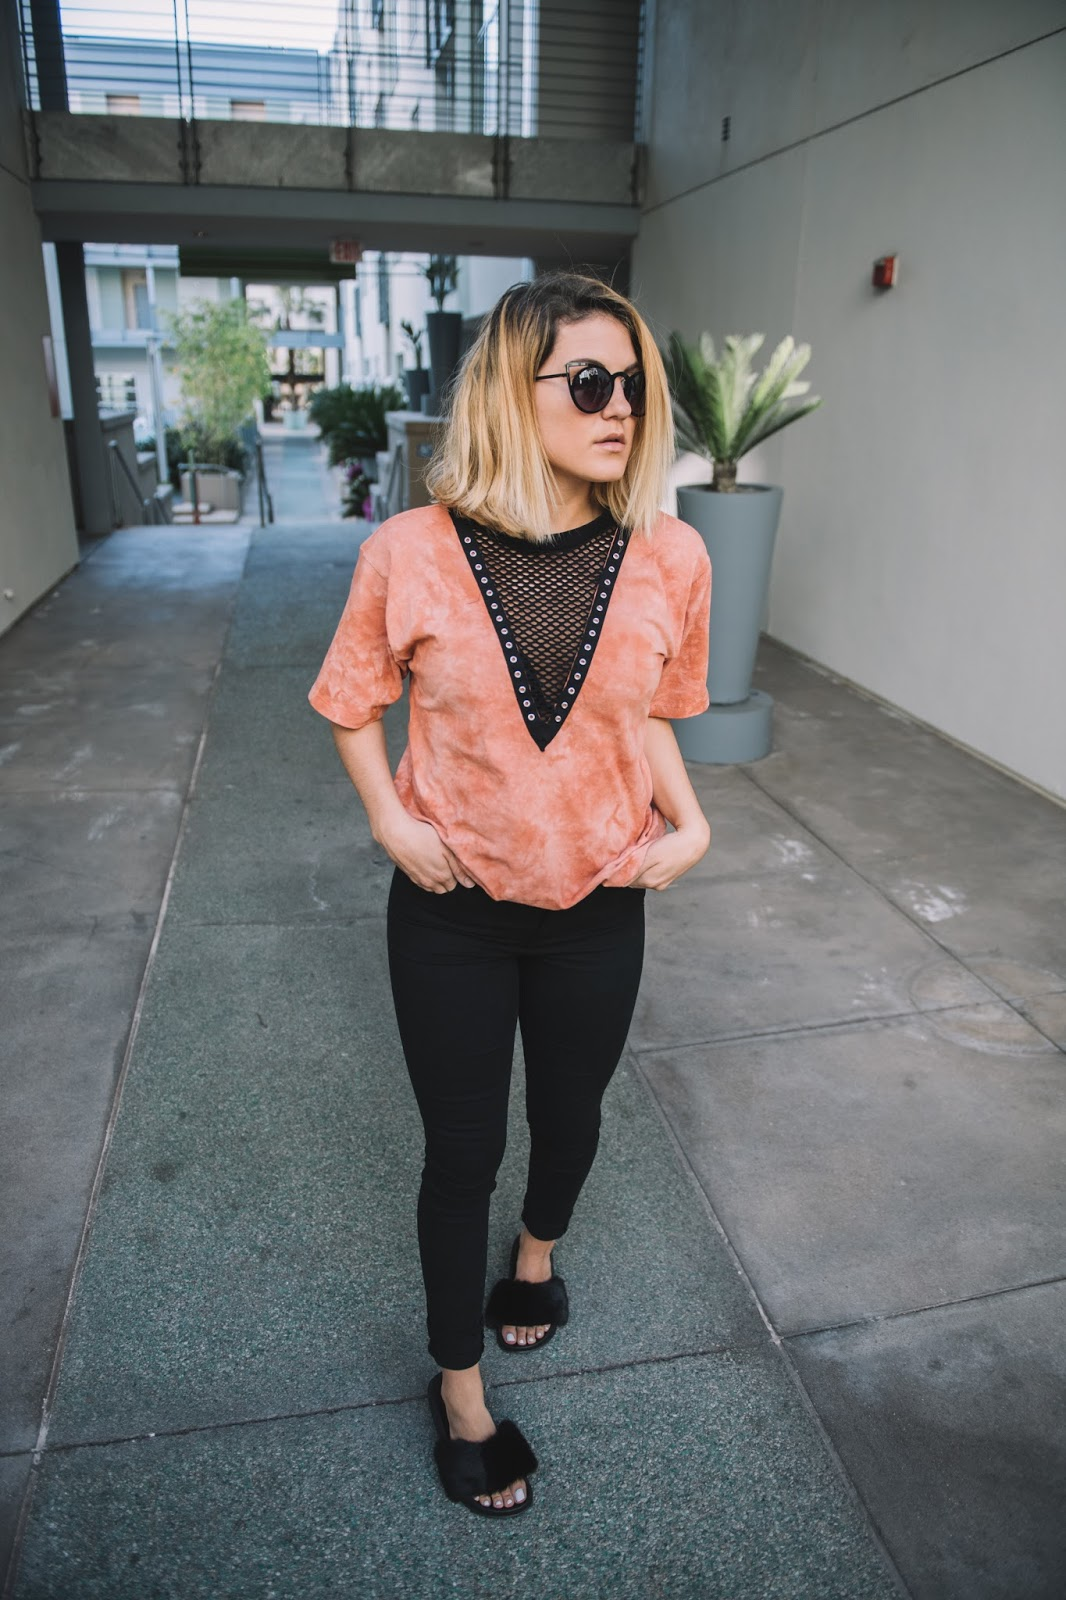 Casual Loungewear Style - My Cup of Chic | Taylor Winkelmeyer